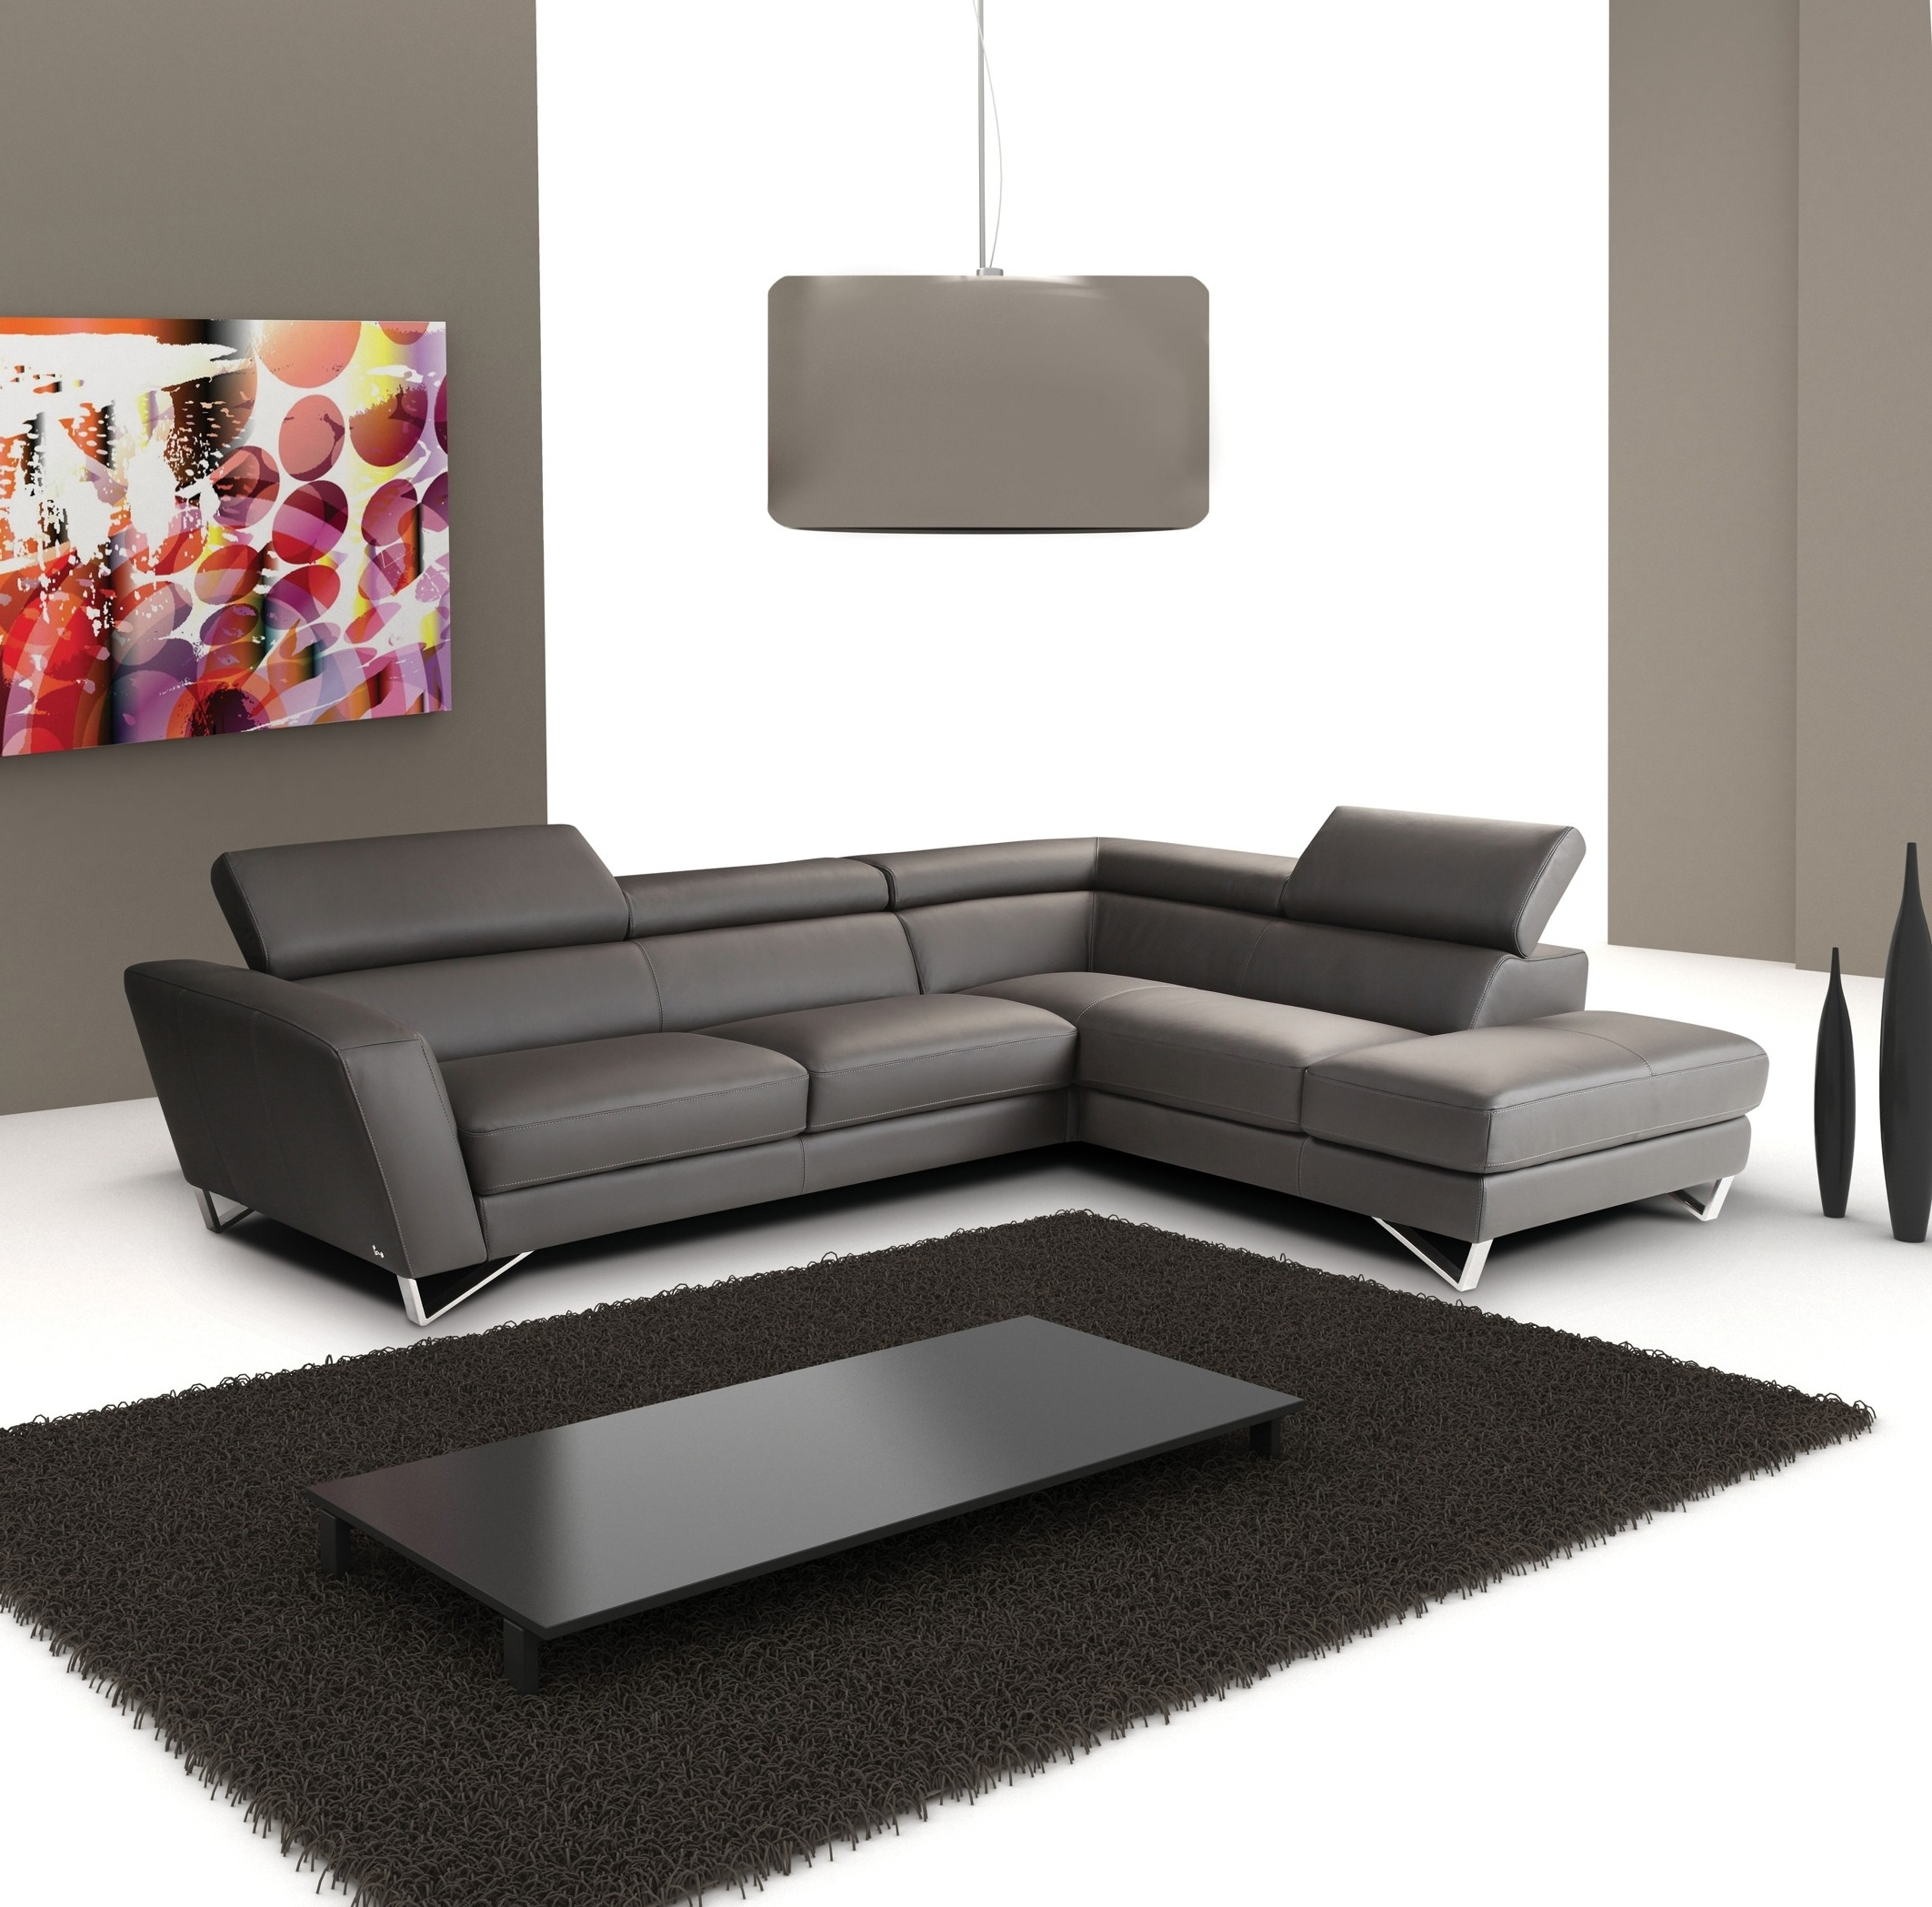 Trendy Modern Sectional Sofas In Sparta Italian Leather Modern Sectional Sofa (View 3 of 15)